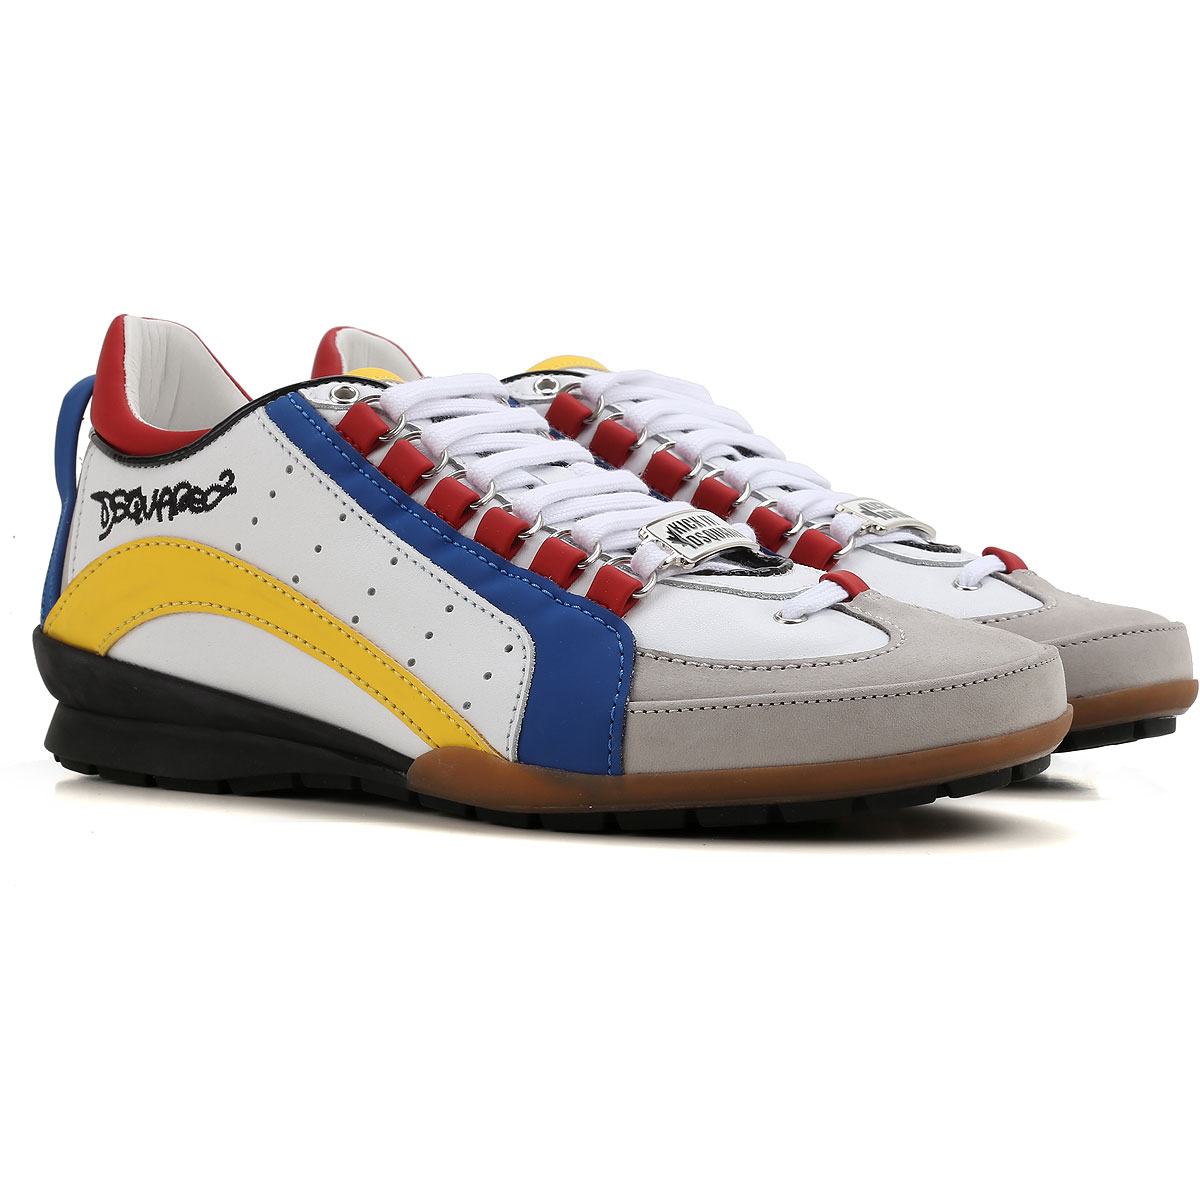 Mens Shoes Dsquared2, Style code: sn434